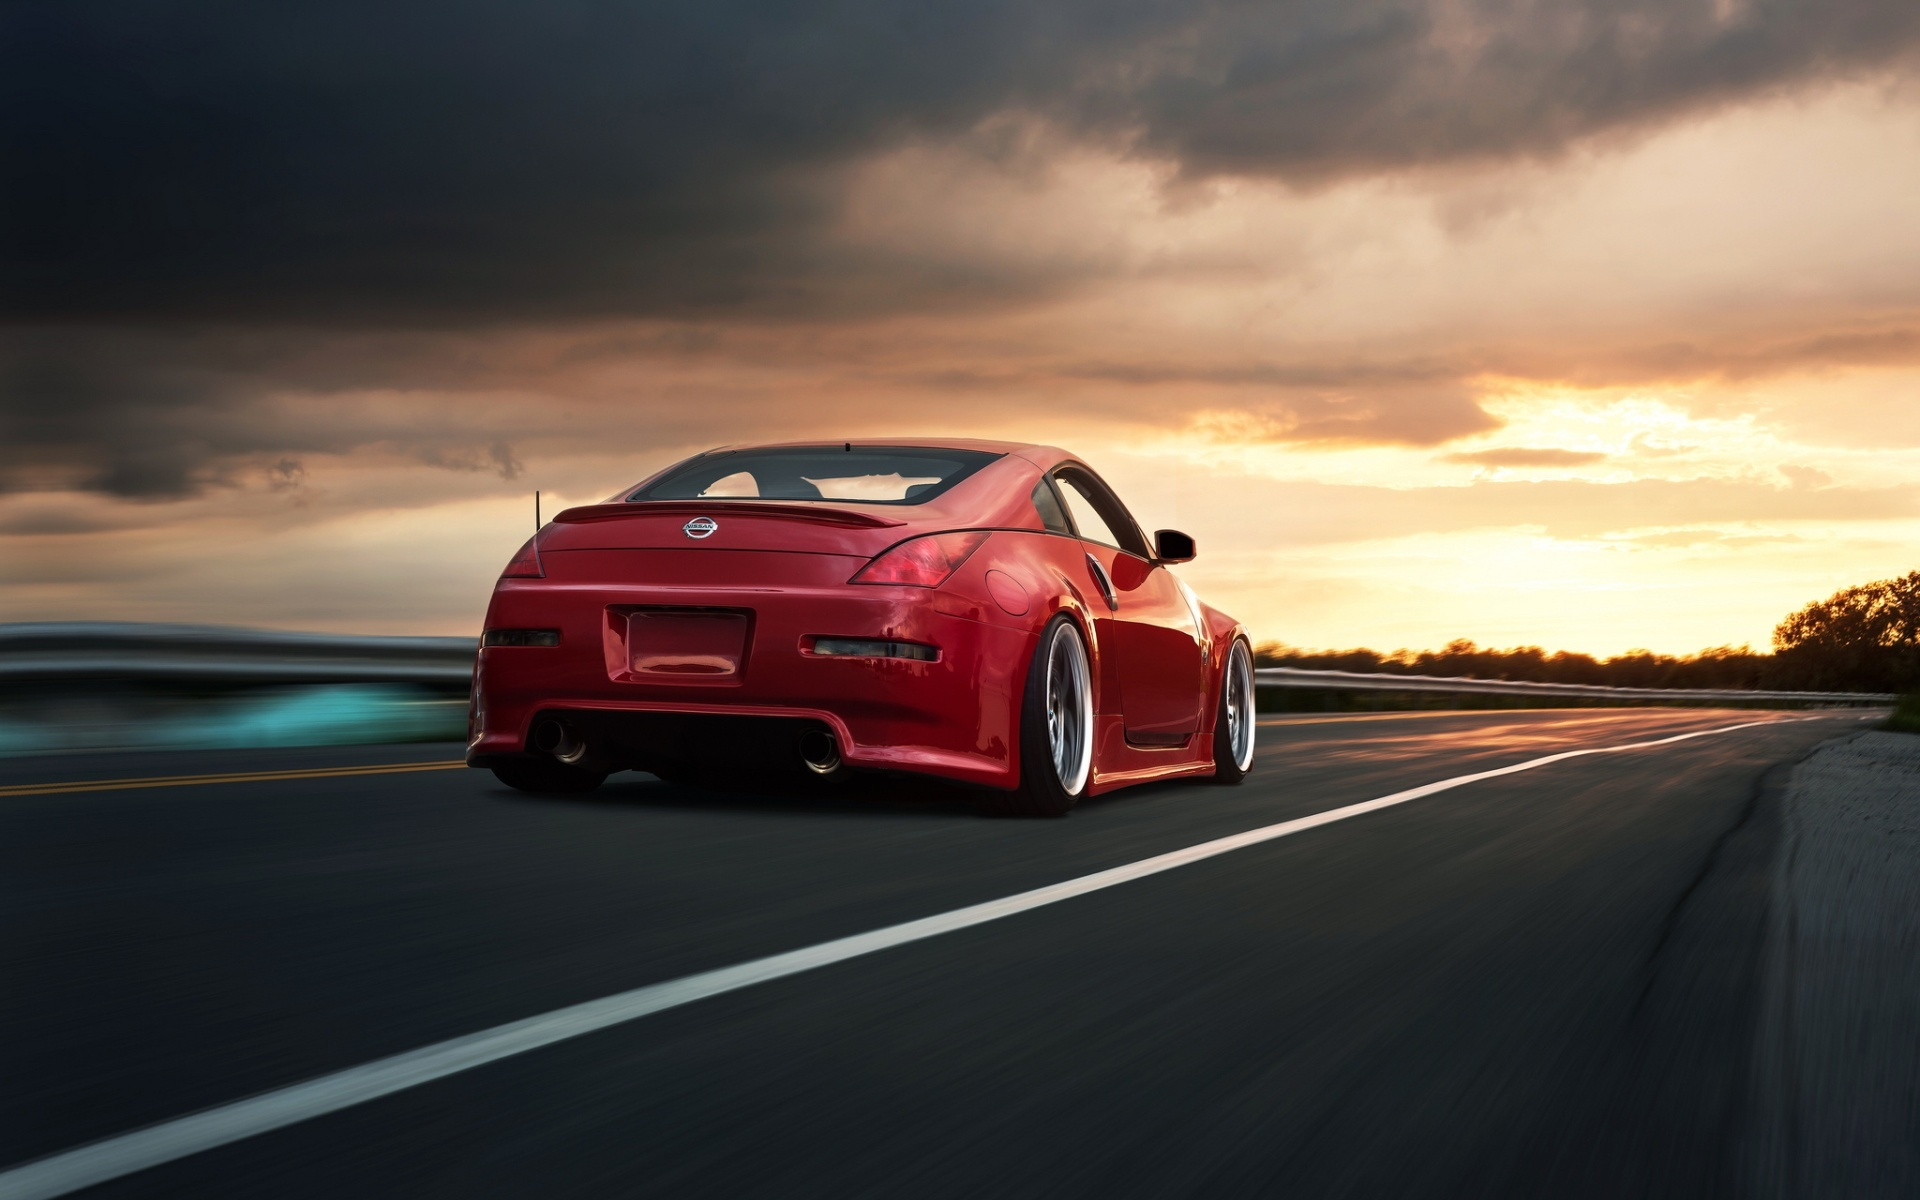 1920x1200 - Nissan 350Z Wallpapers 19